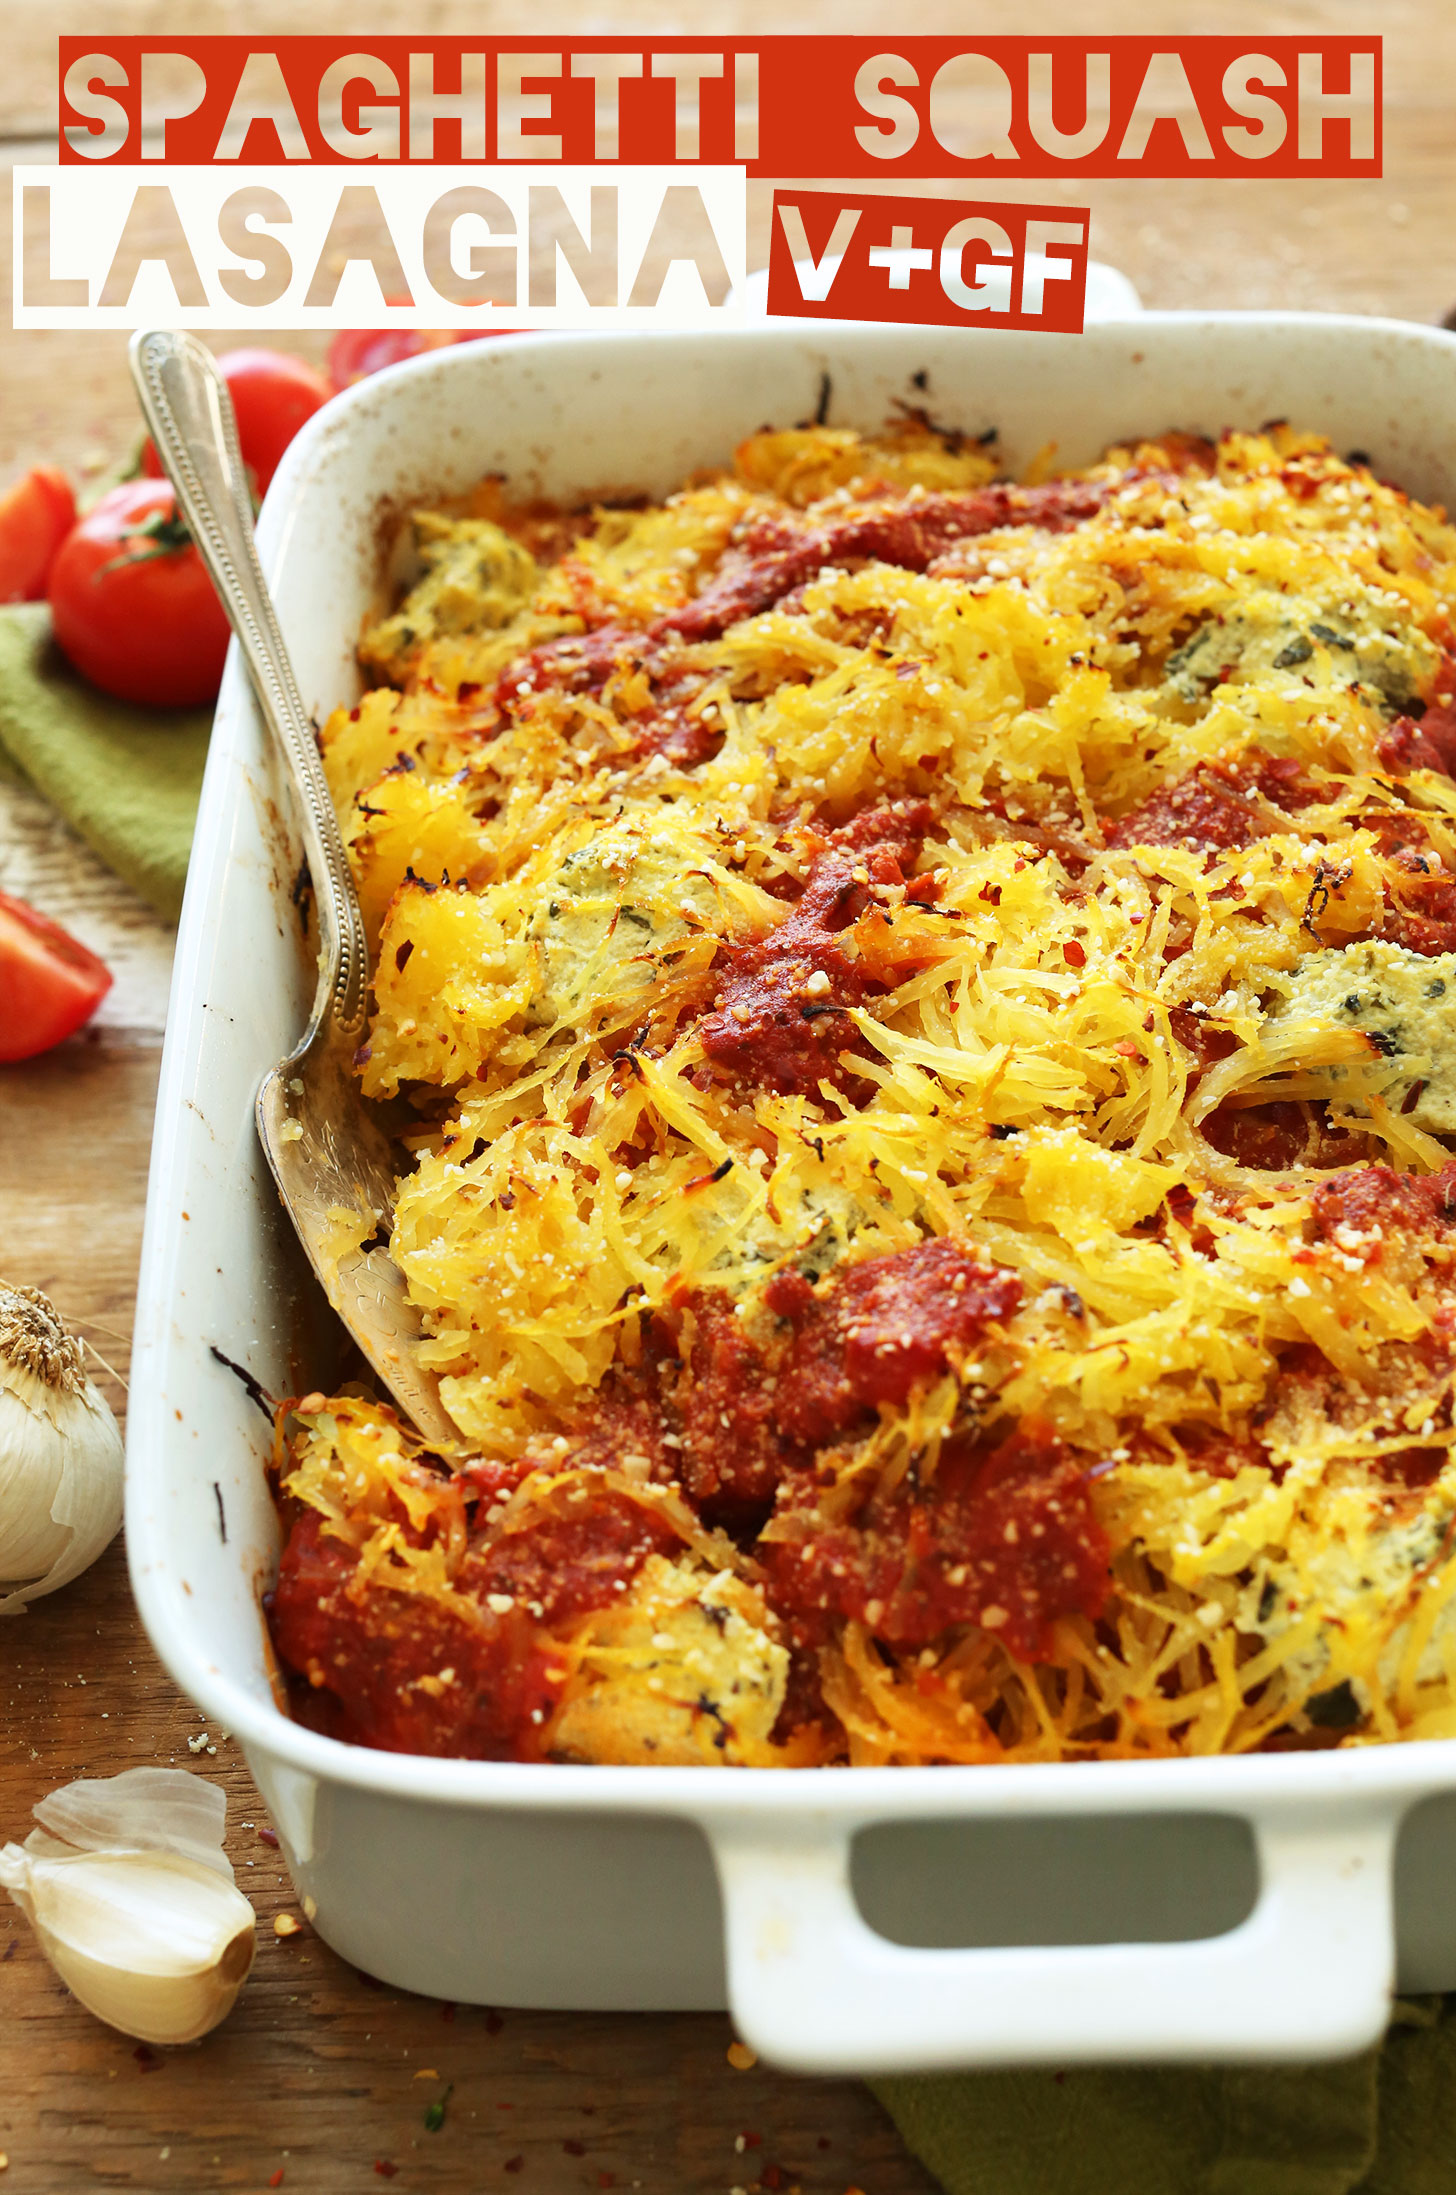 Spaghetti squash lasagna minimalist baker recipes healthy spaghetti squash lasagna bake 10 ingredients plant based so delicious forumfinder Image collections